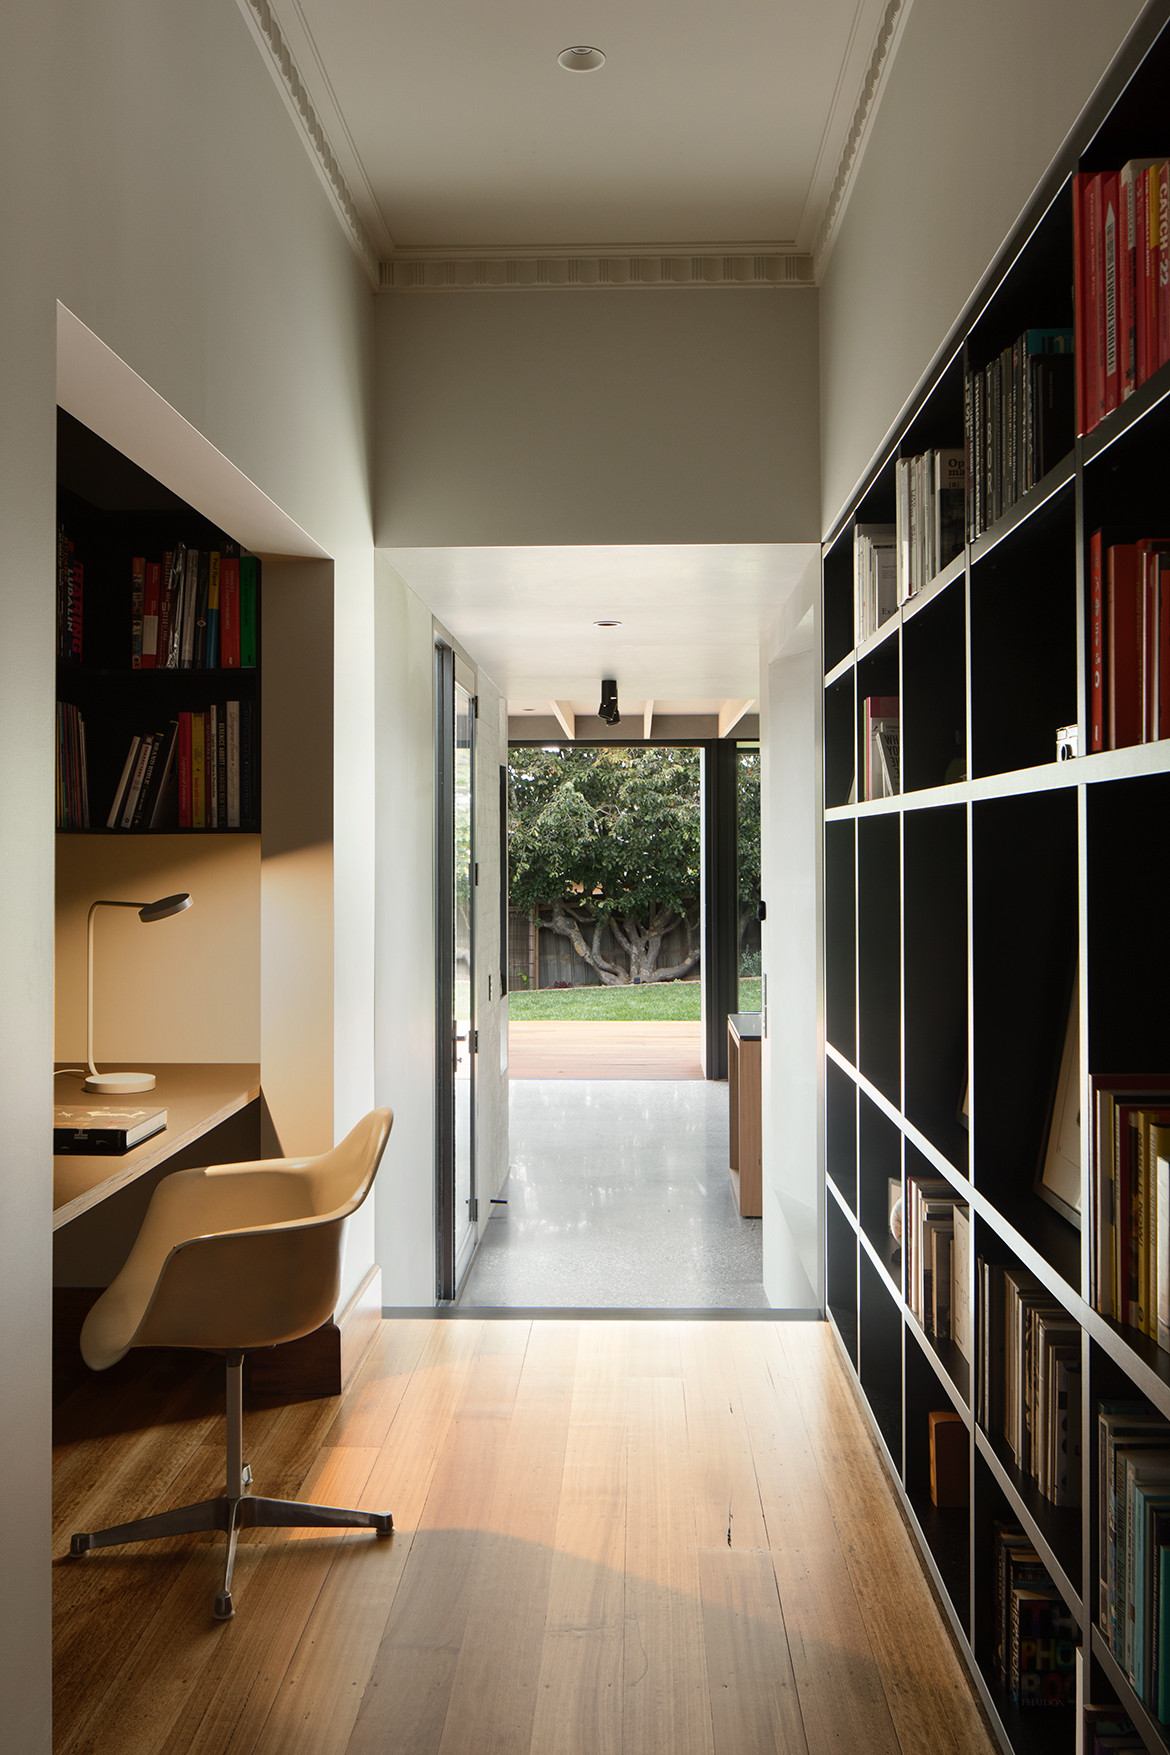 Hallway with reading nook and shelves.